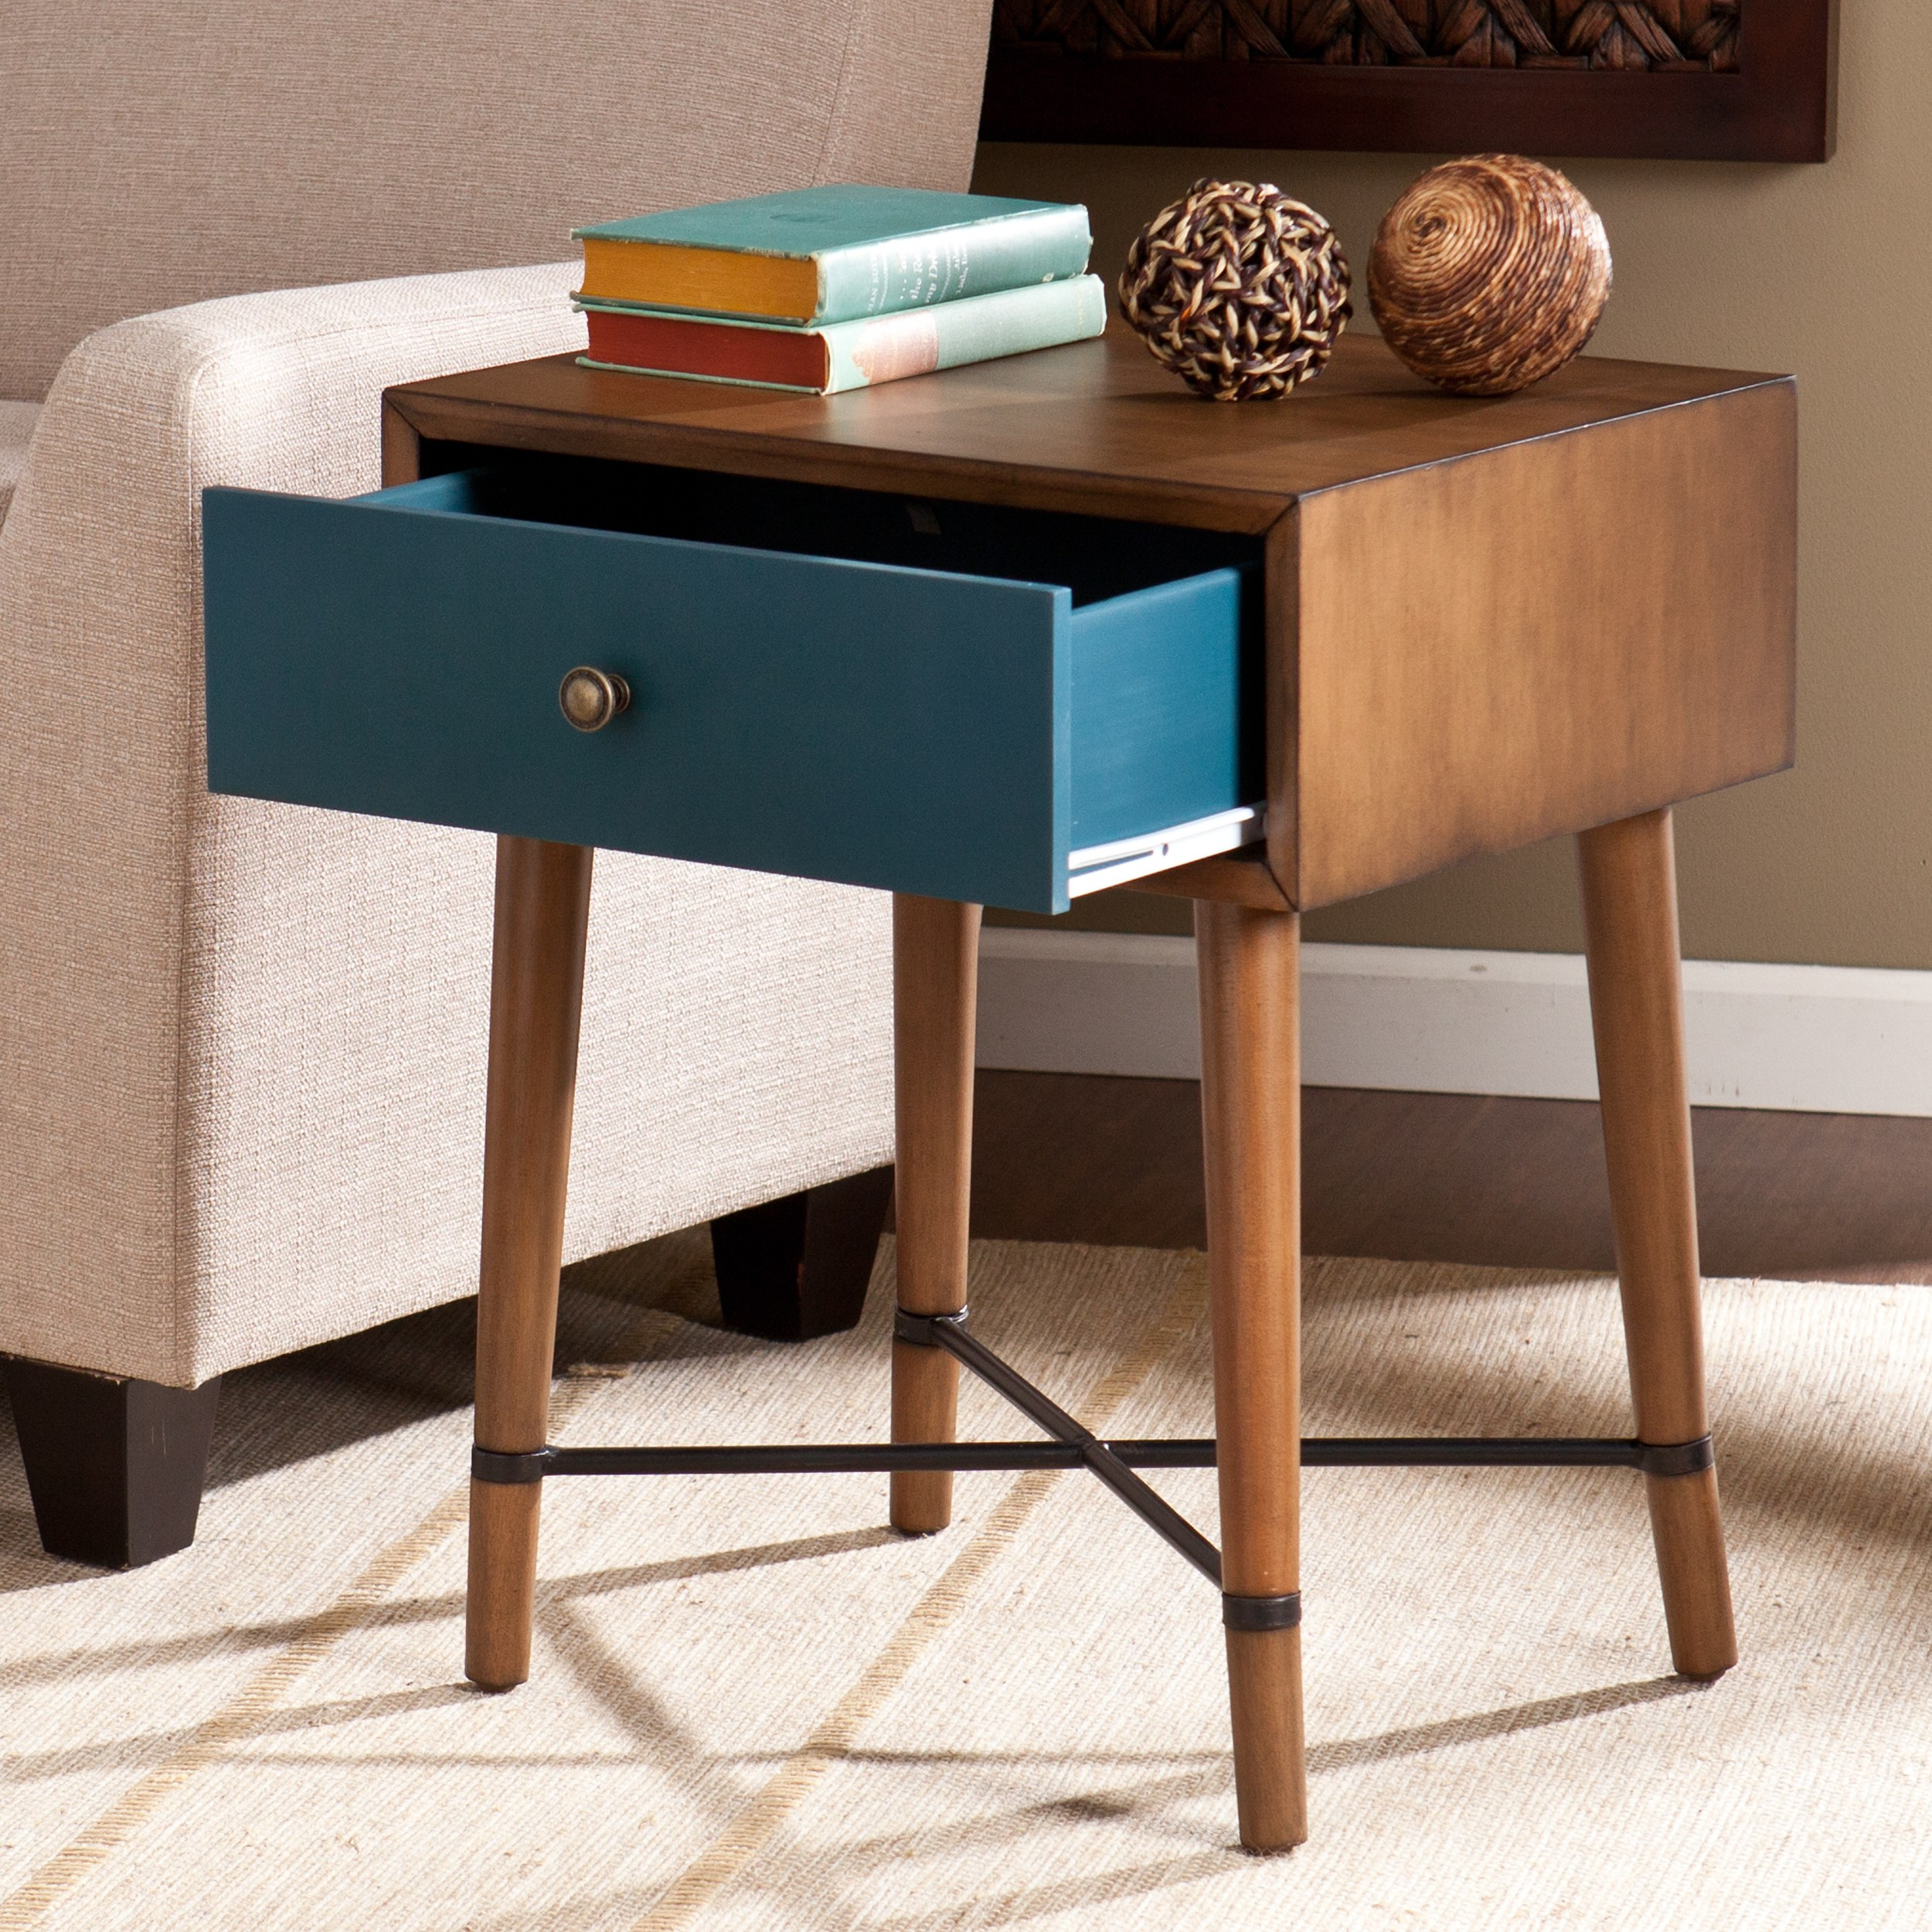 harper blvd niles blue accent table free shipping today drum tables living room target threshold furniture bench mirror design half console west elm industrial coffee porcelain